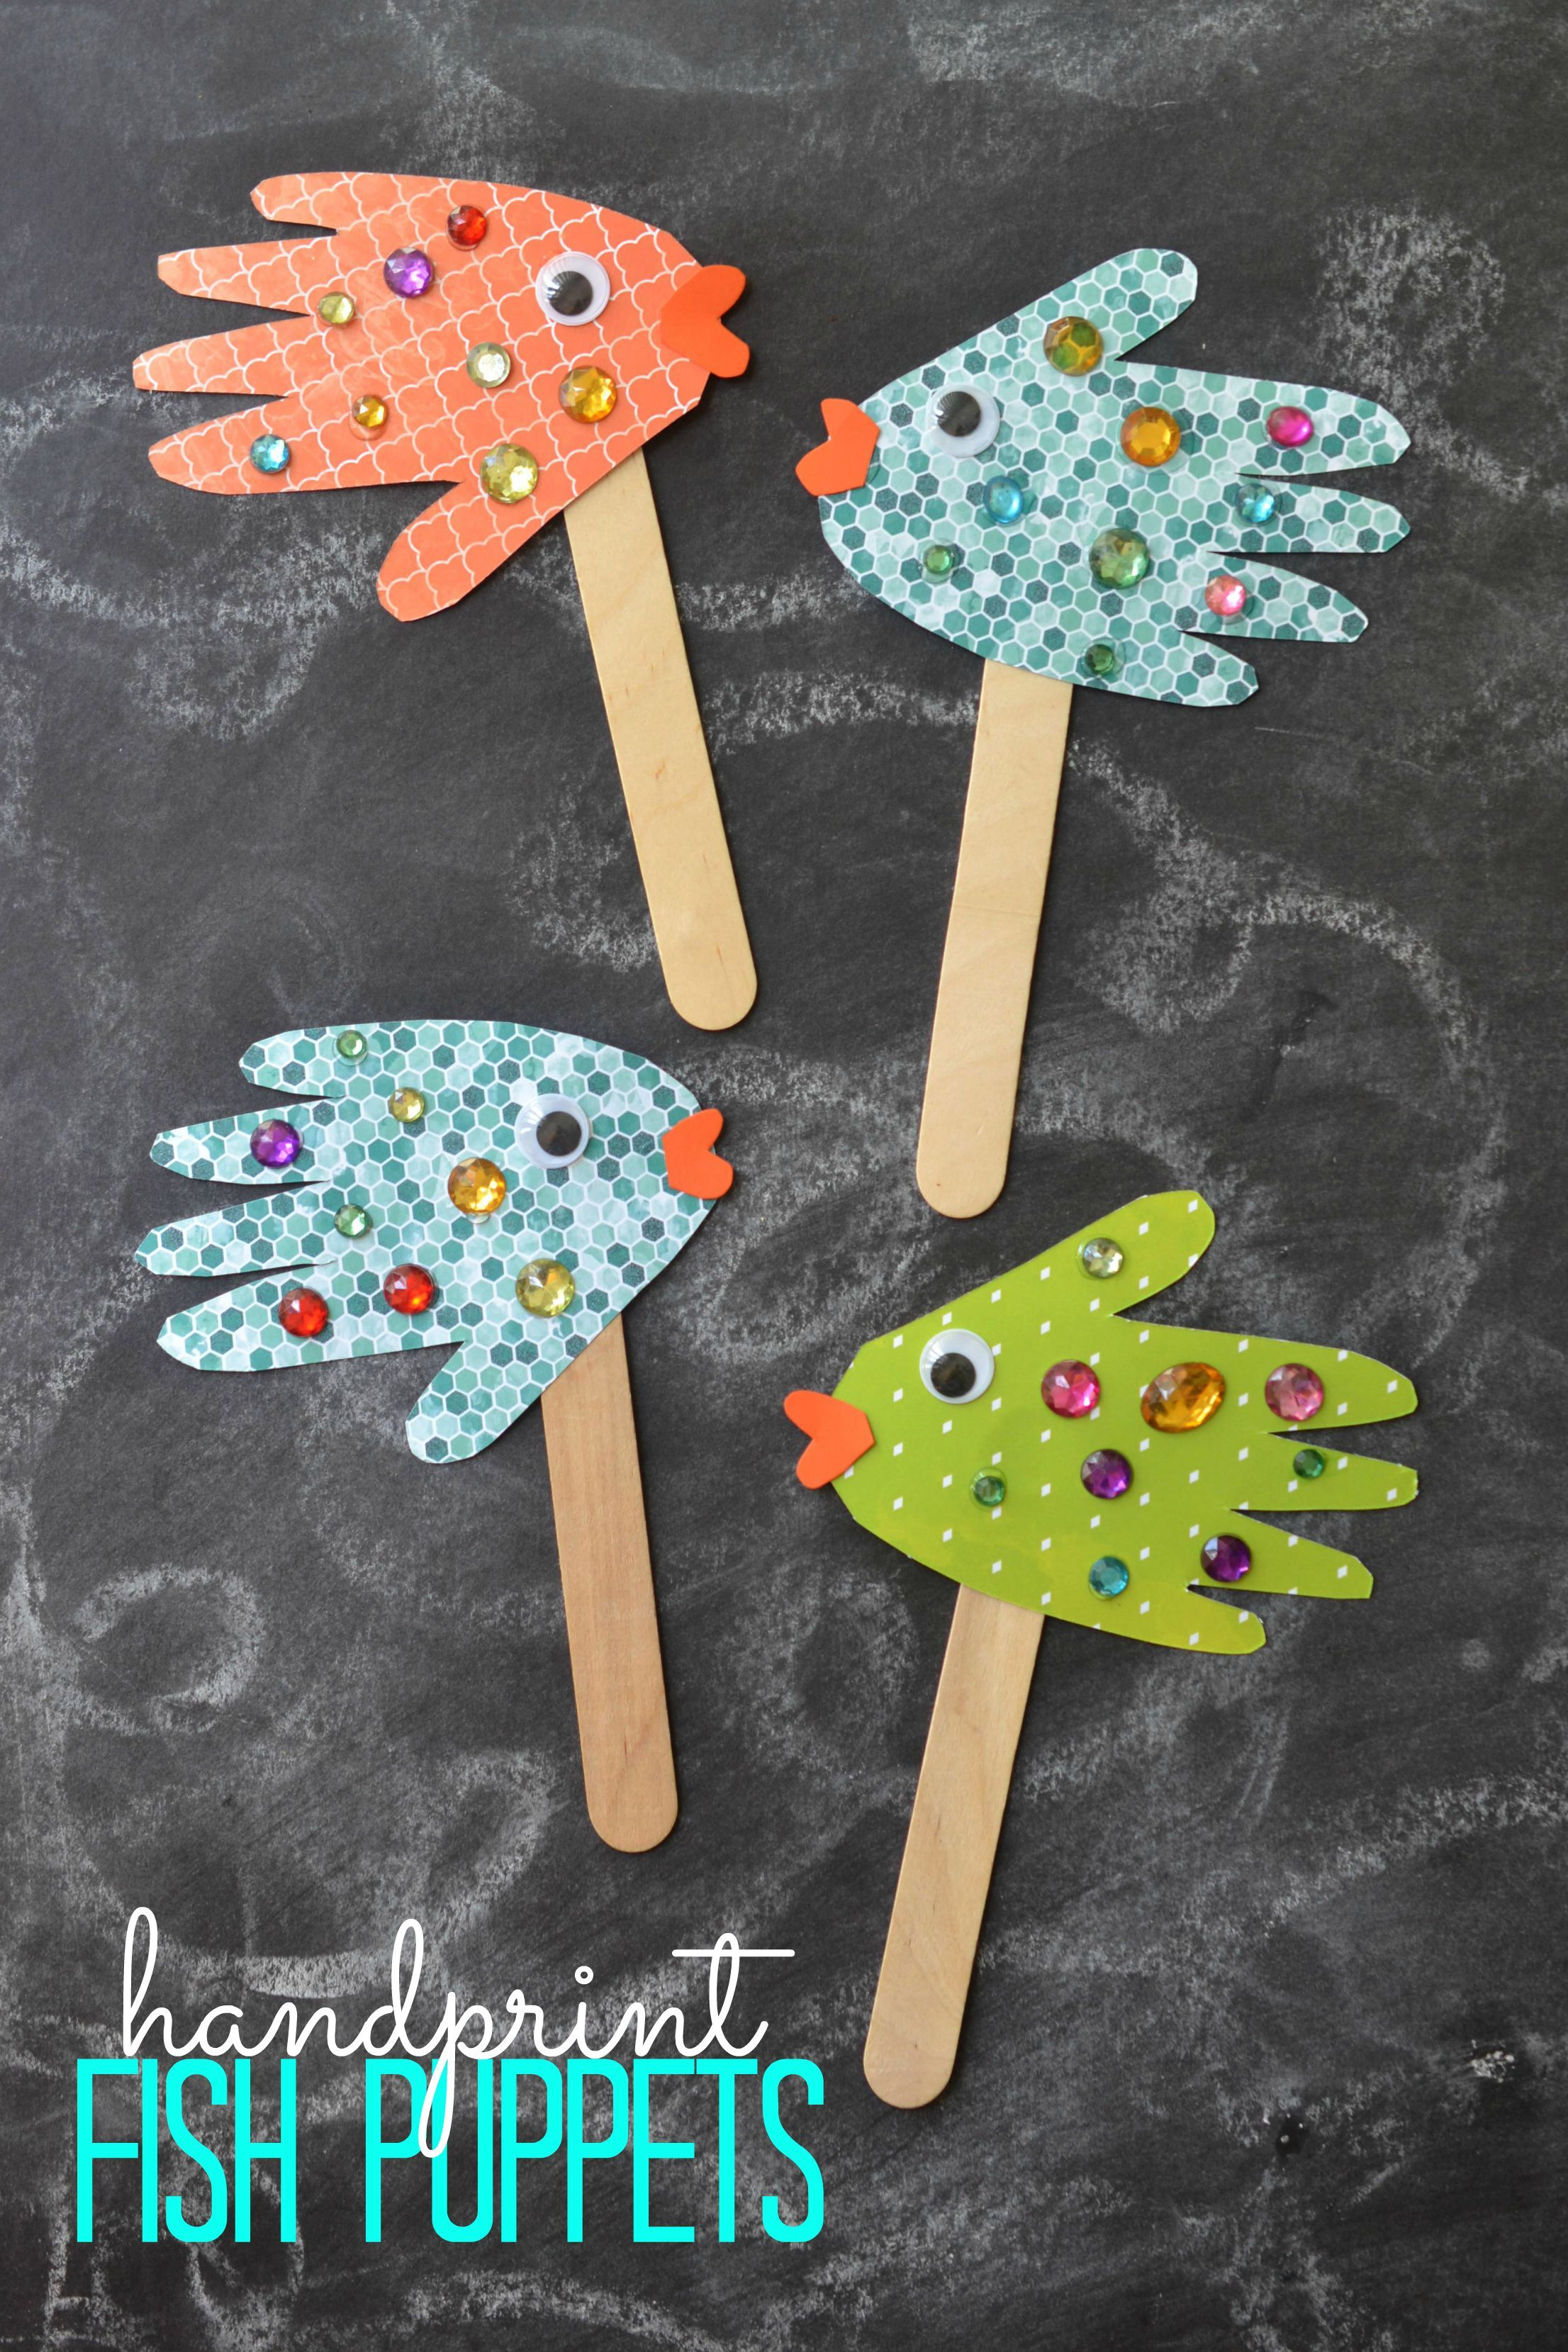 Art Decorating And Crafting Easy Kids Craft Handprint Fish Puppets Slp Bulletin Board And